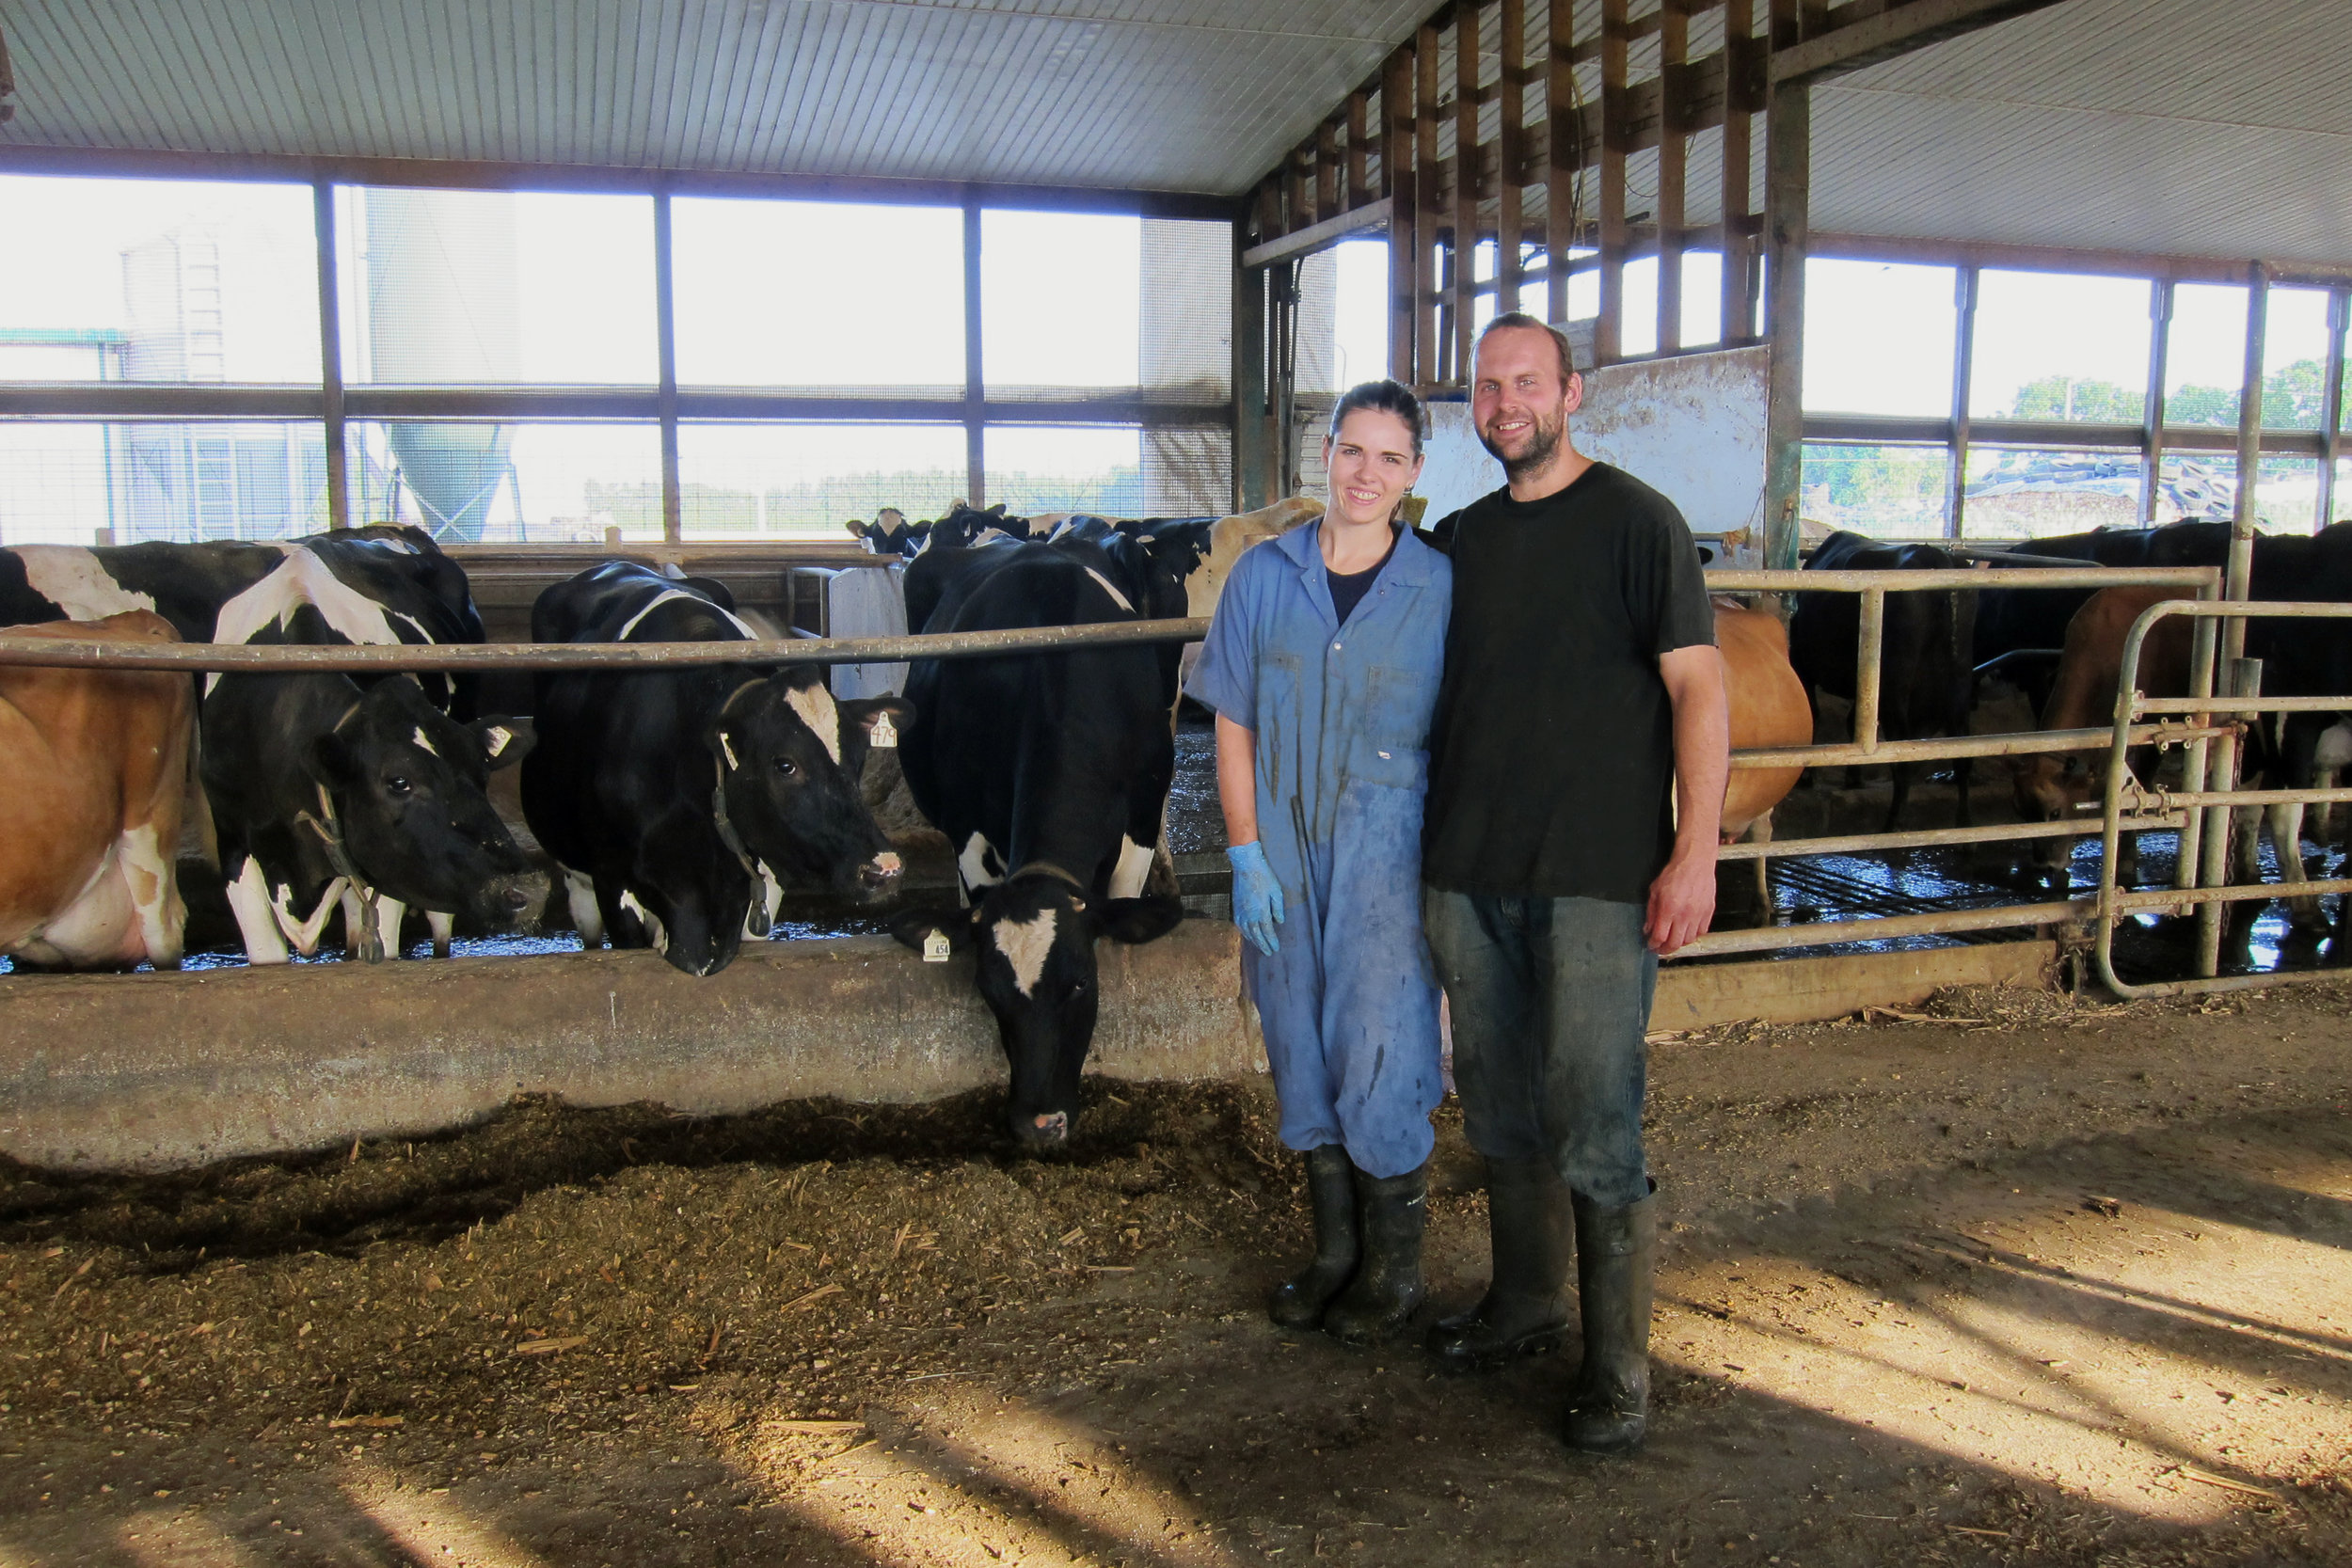 Bart and Laura Klessens have been feeding a Leafy Corn Silage Hybrid for three seasons on their 75 cow dairy in Southern Ontario. Milk production is right where they want it to be.